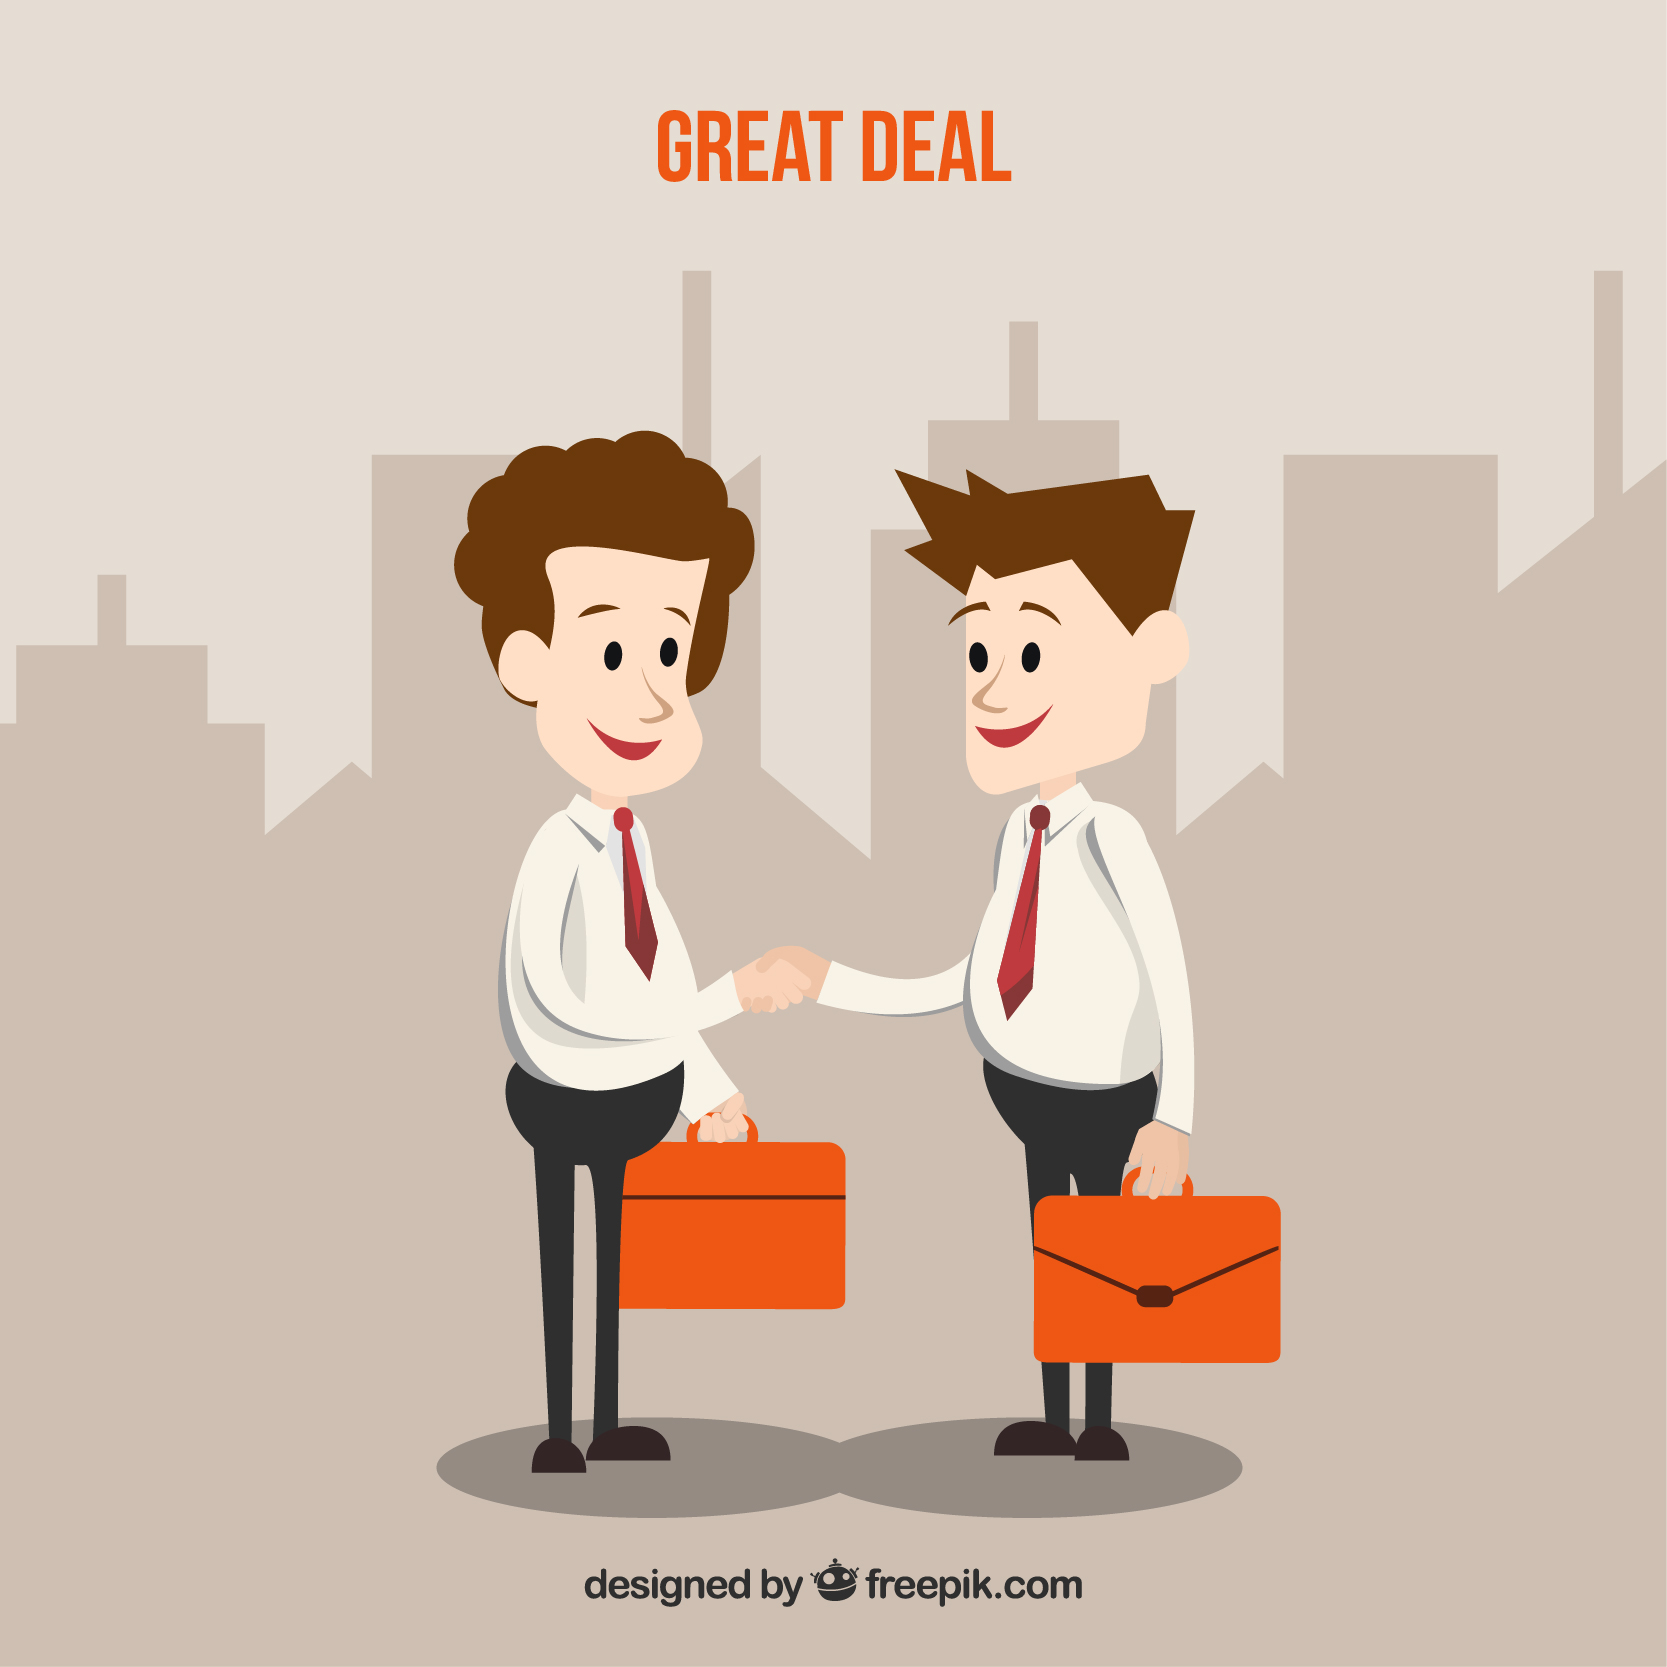 negotiation skills Negotiation skills are essential in many project environments negotiating for resources, budget and scope are often required to keep a project on track this course provides the key collaborative negotiating skills that lead to project success.